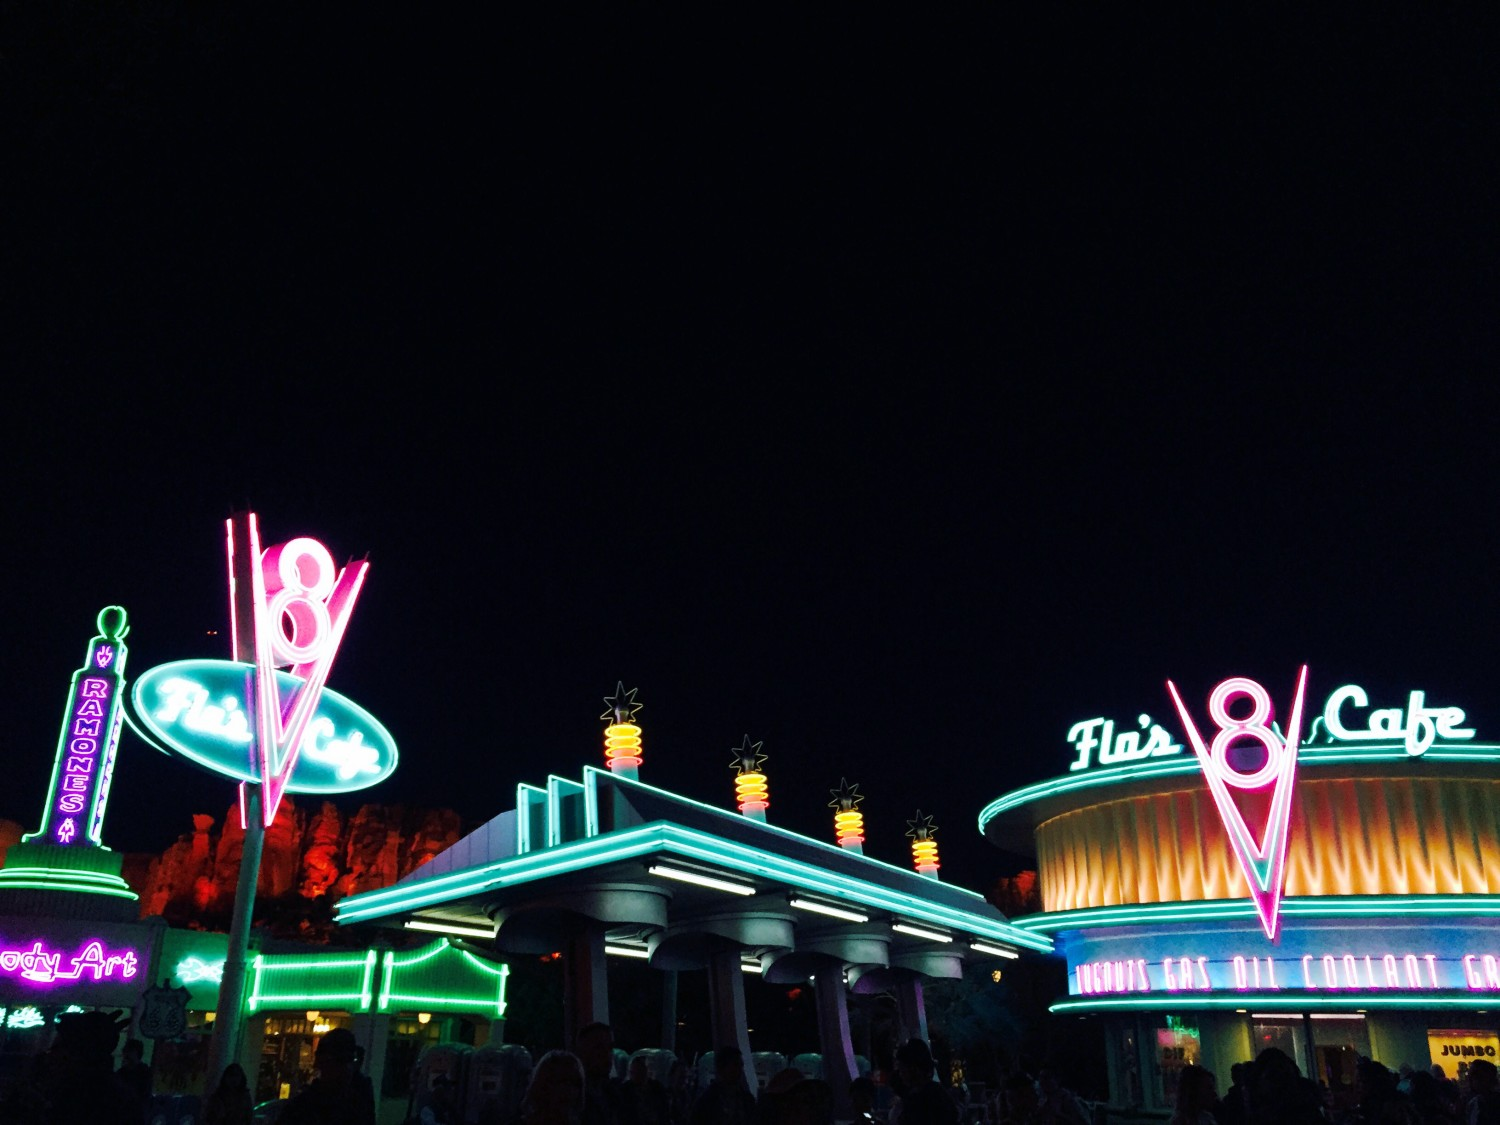 Disney California Adventure Carsland Radiator Springs at Night